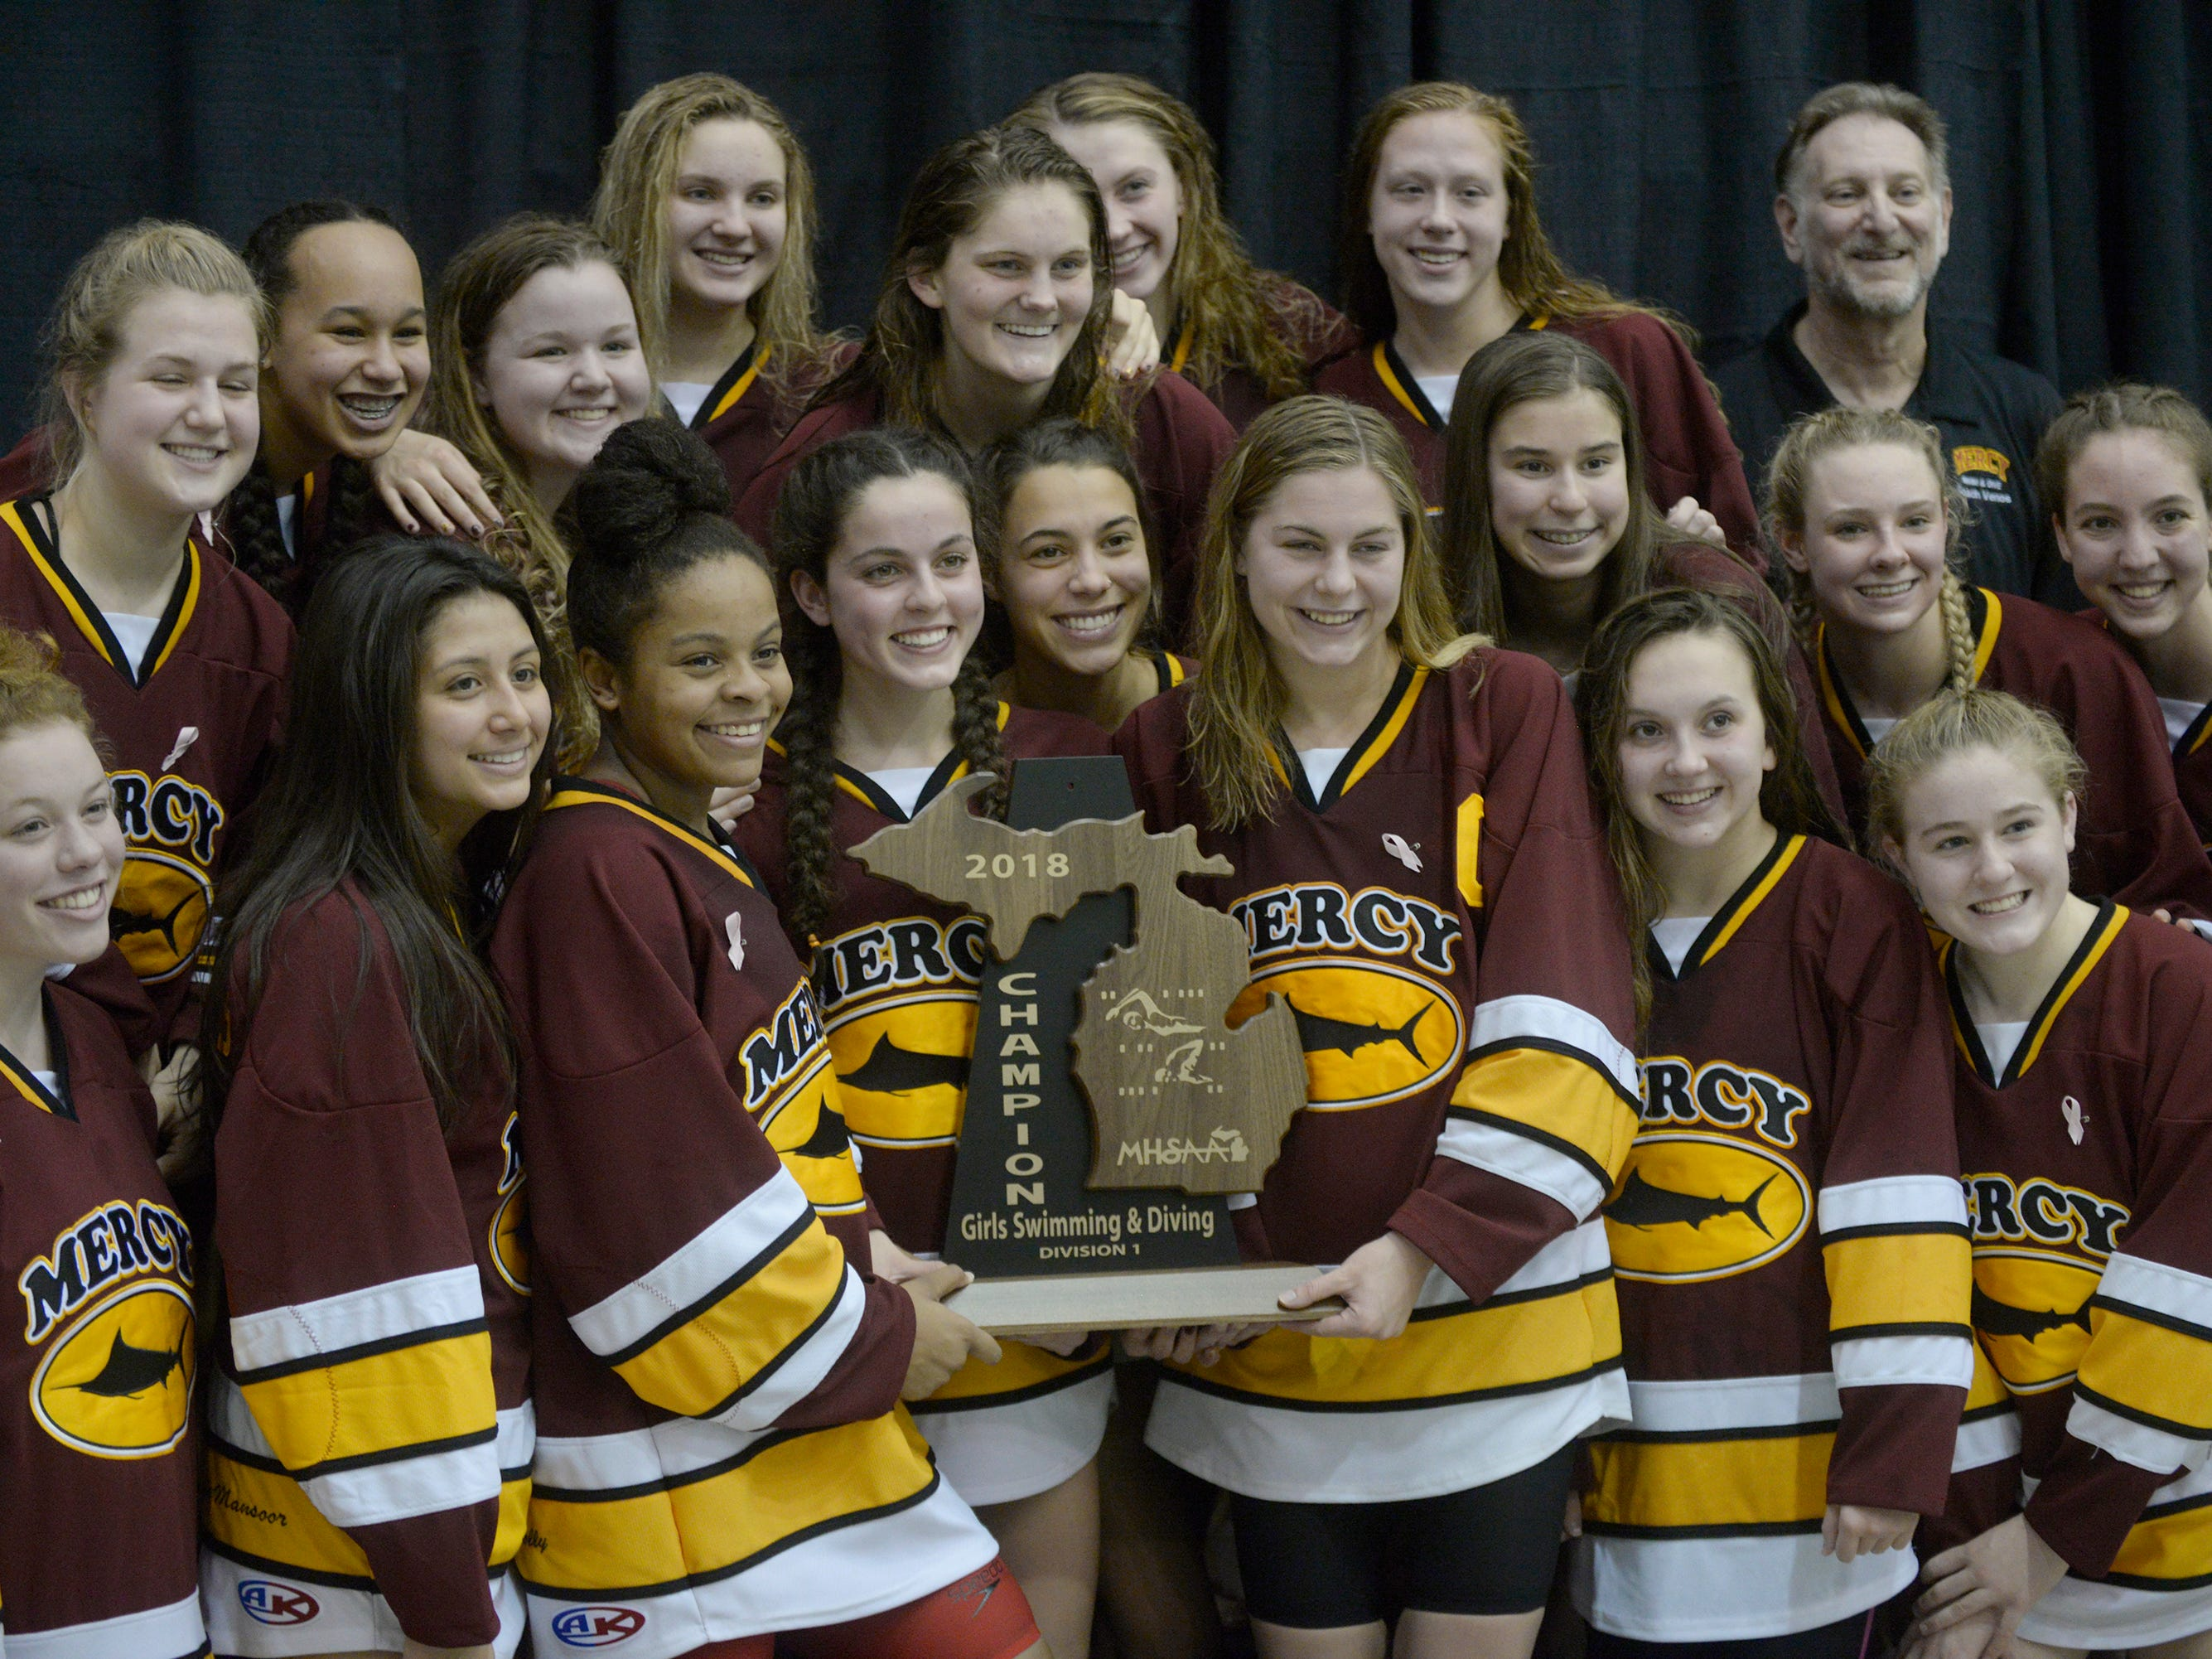 Mercy swimmers pose with the championship trophy at the Division 1 girls swimming and diving championships held at Eastern Michigan University Nov. 17, 2018.